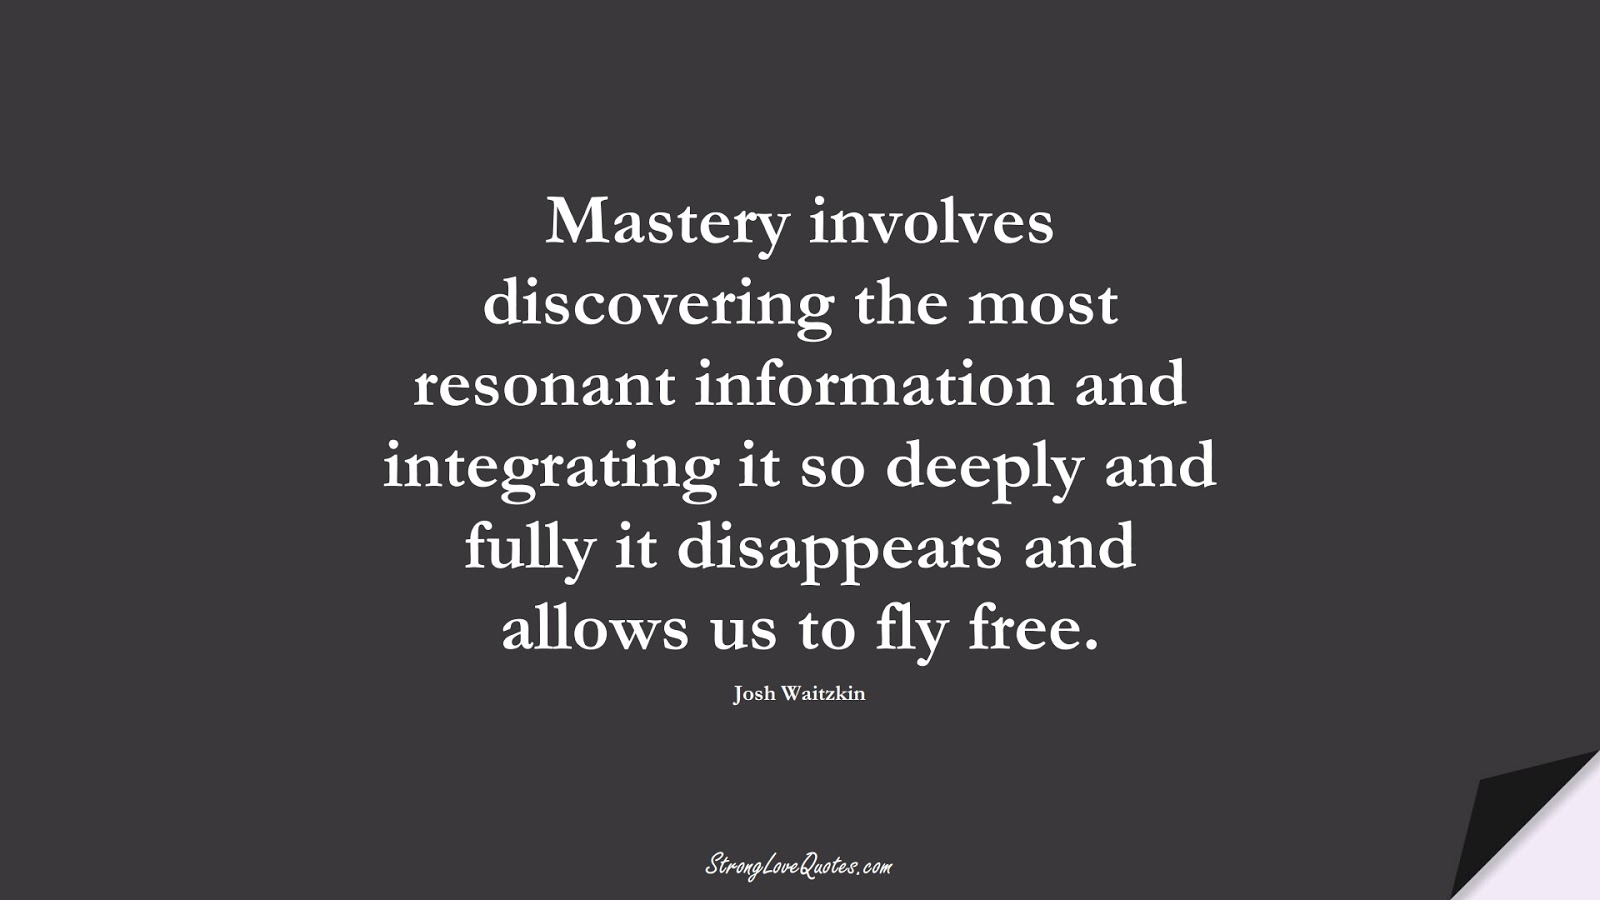 Mastery involves discovering the most resonant information and integrating it so deeply and fully it disappears and allows us to fly free. (Josh Waitzkin);  #LearningQuotes